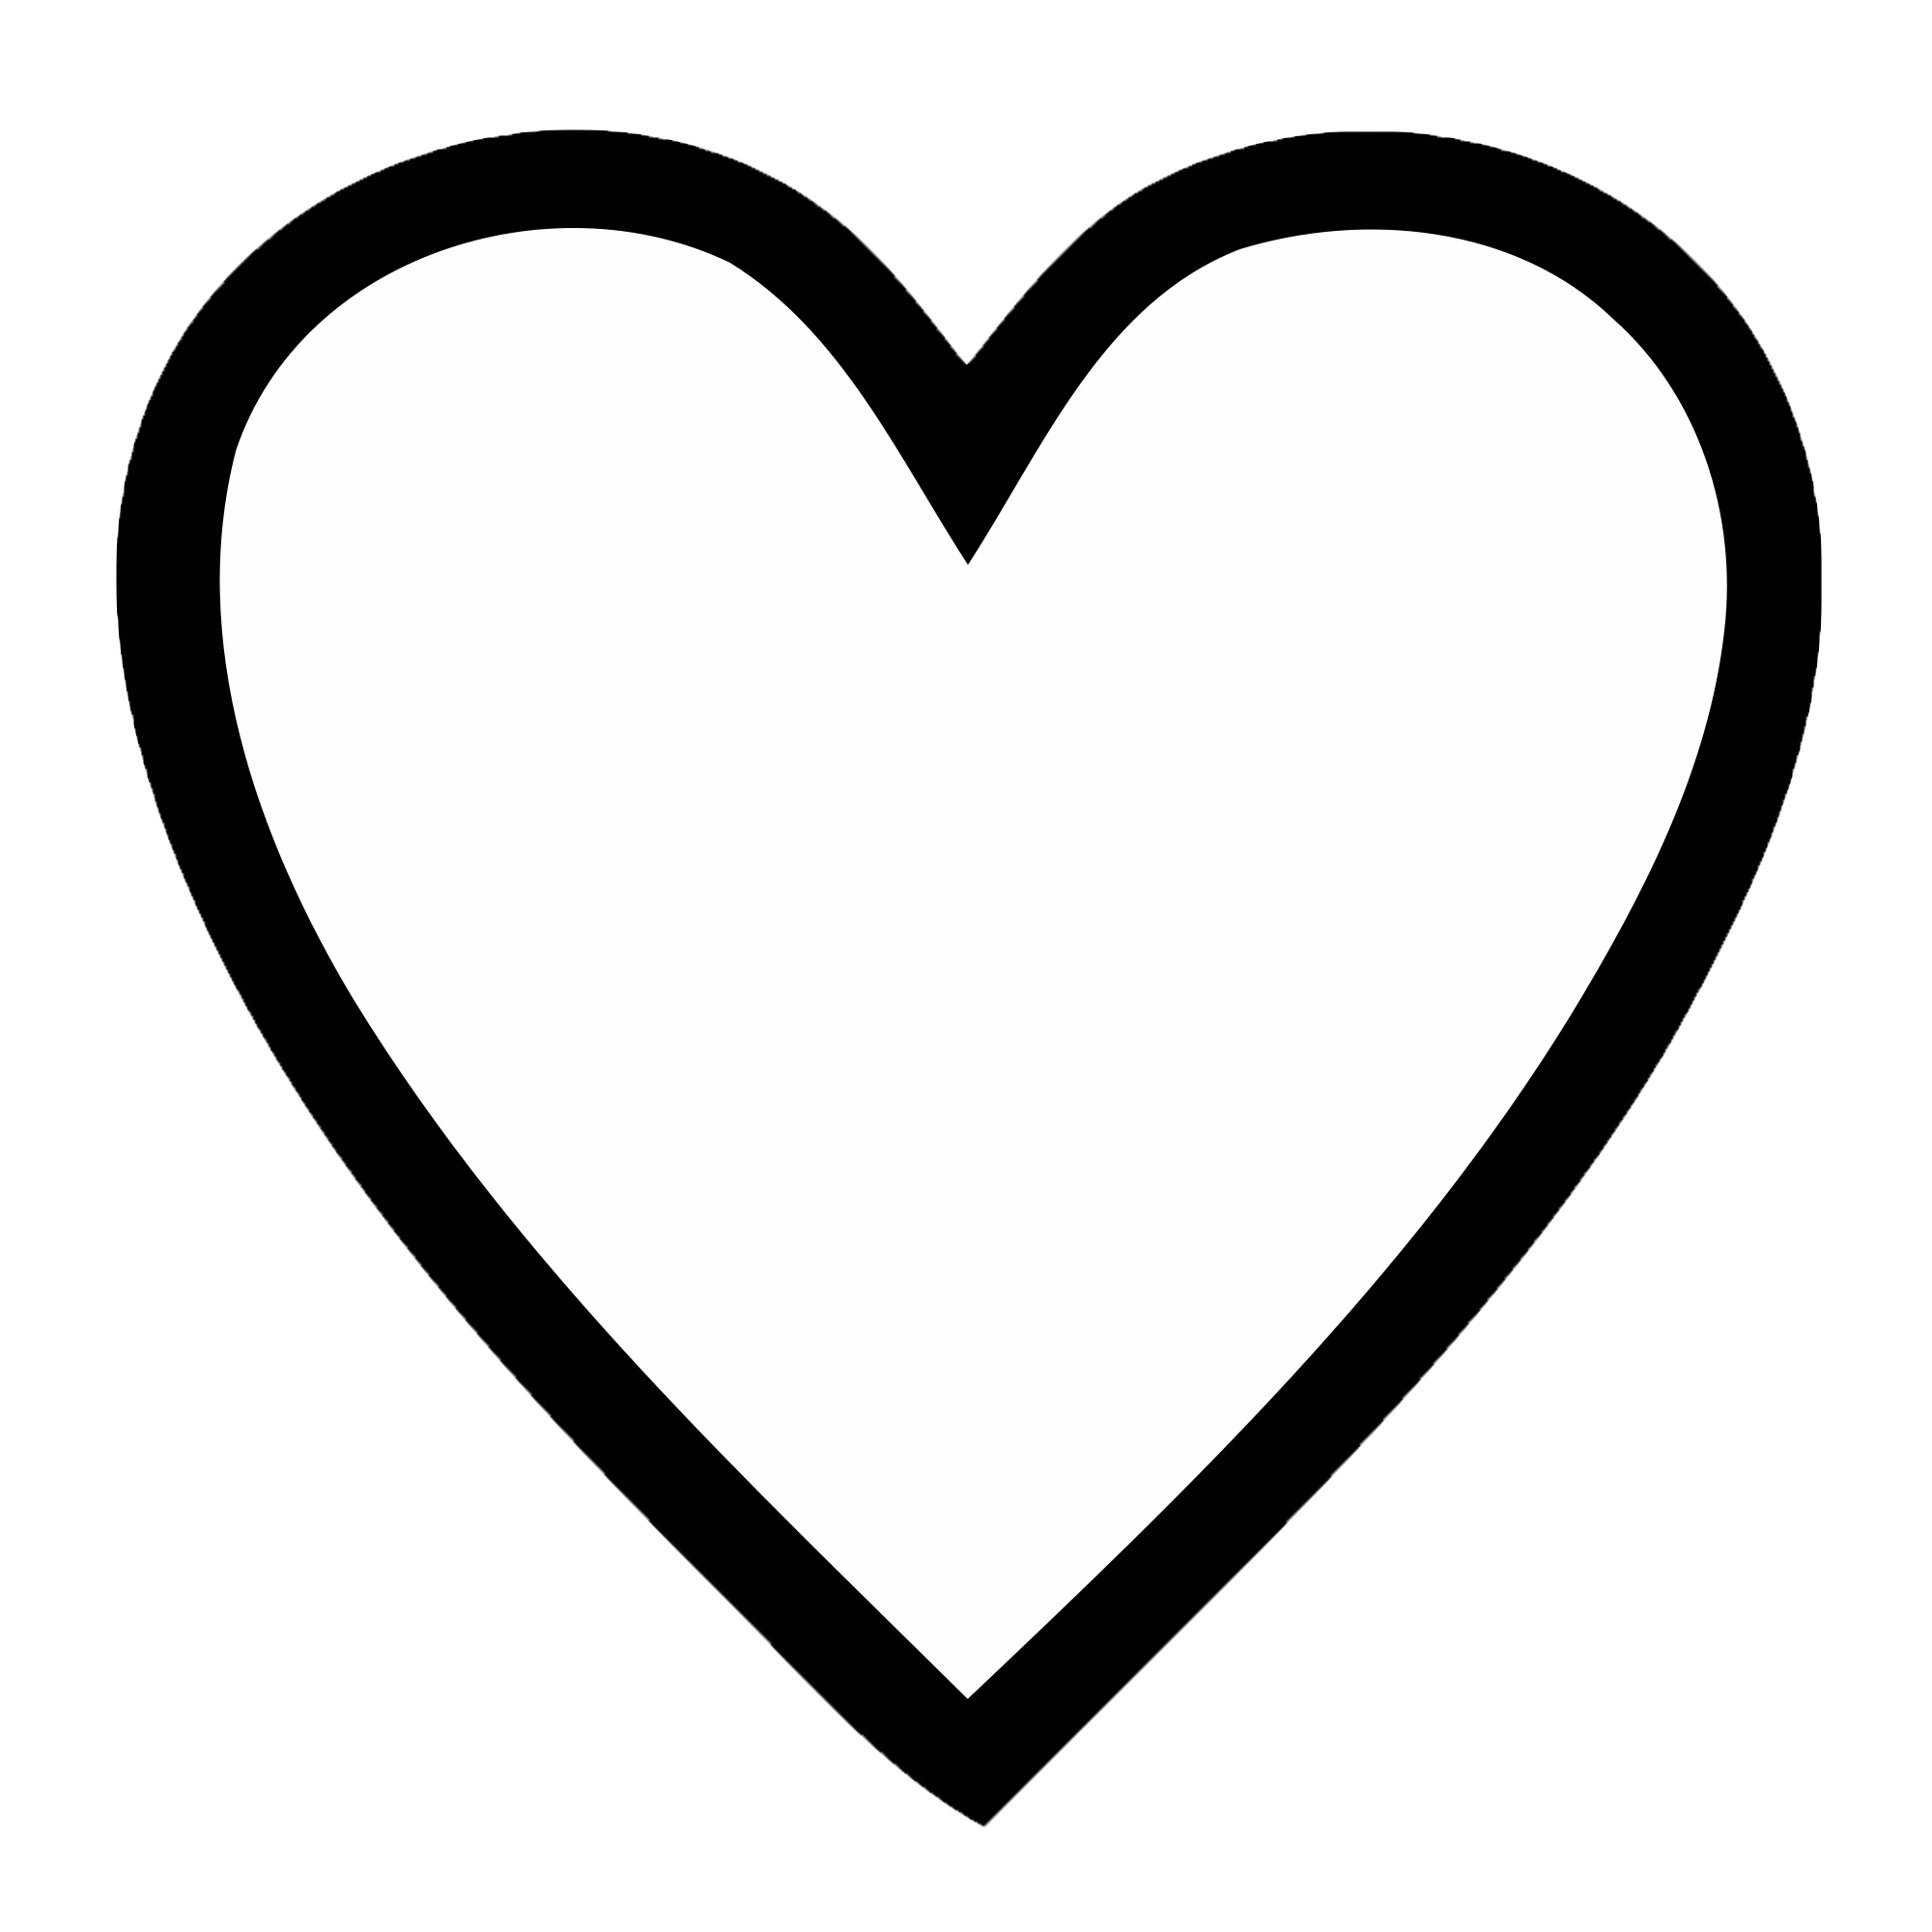 Line Art Heart Outline : Heart template clipart best